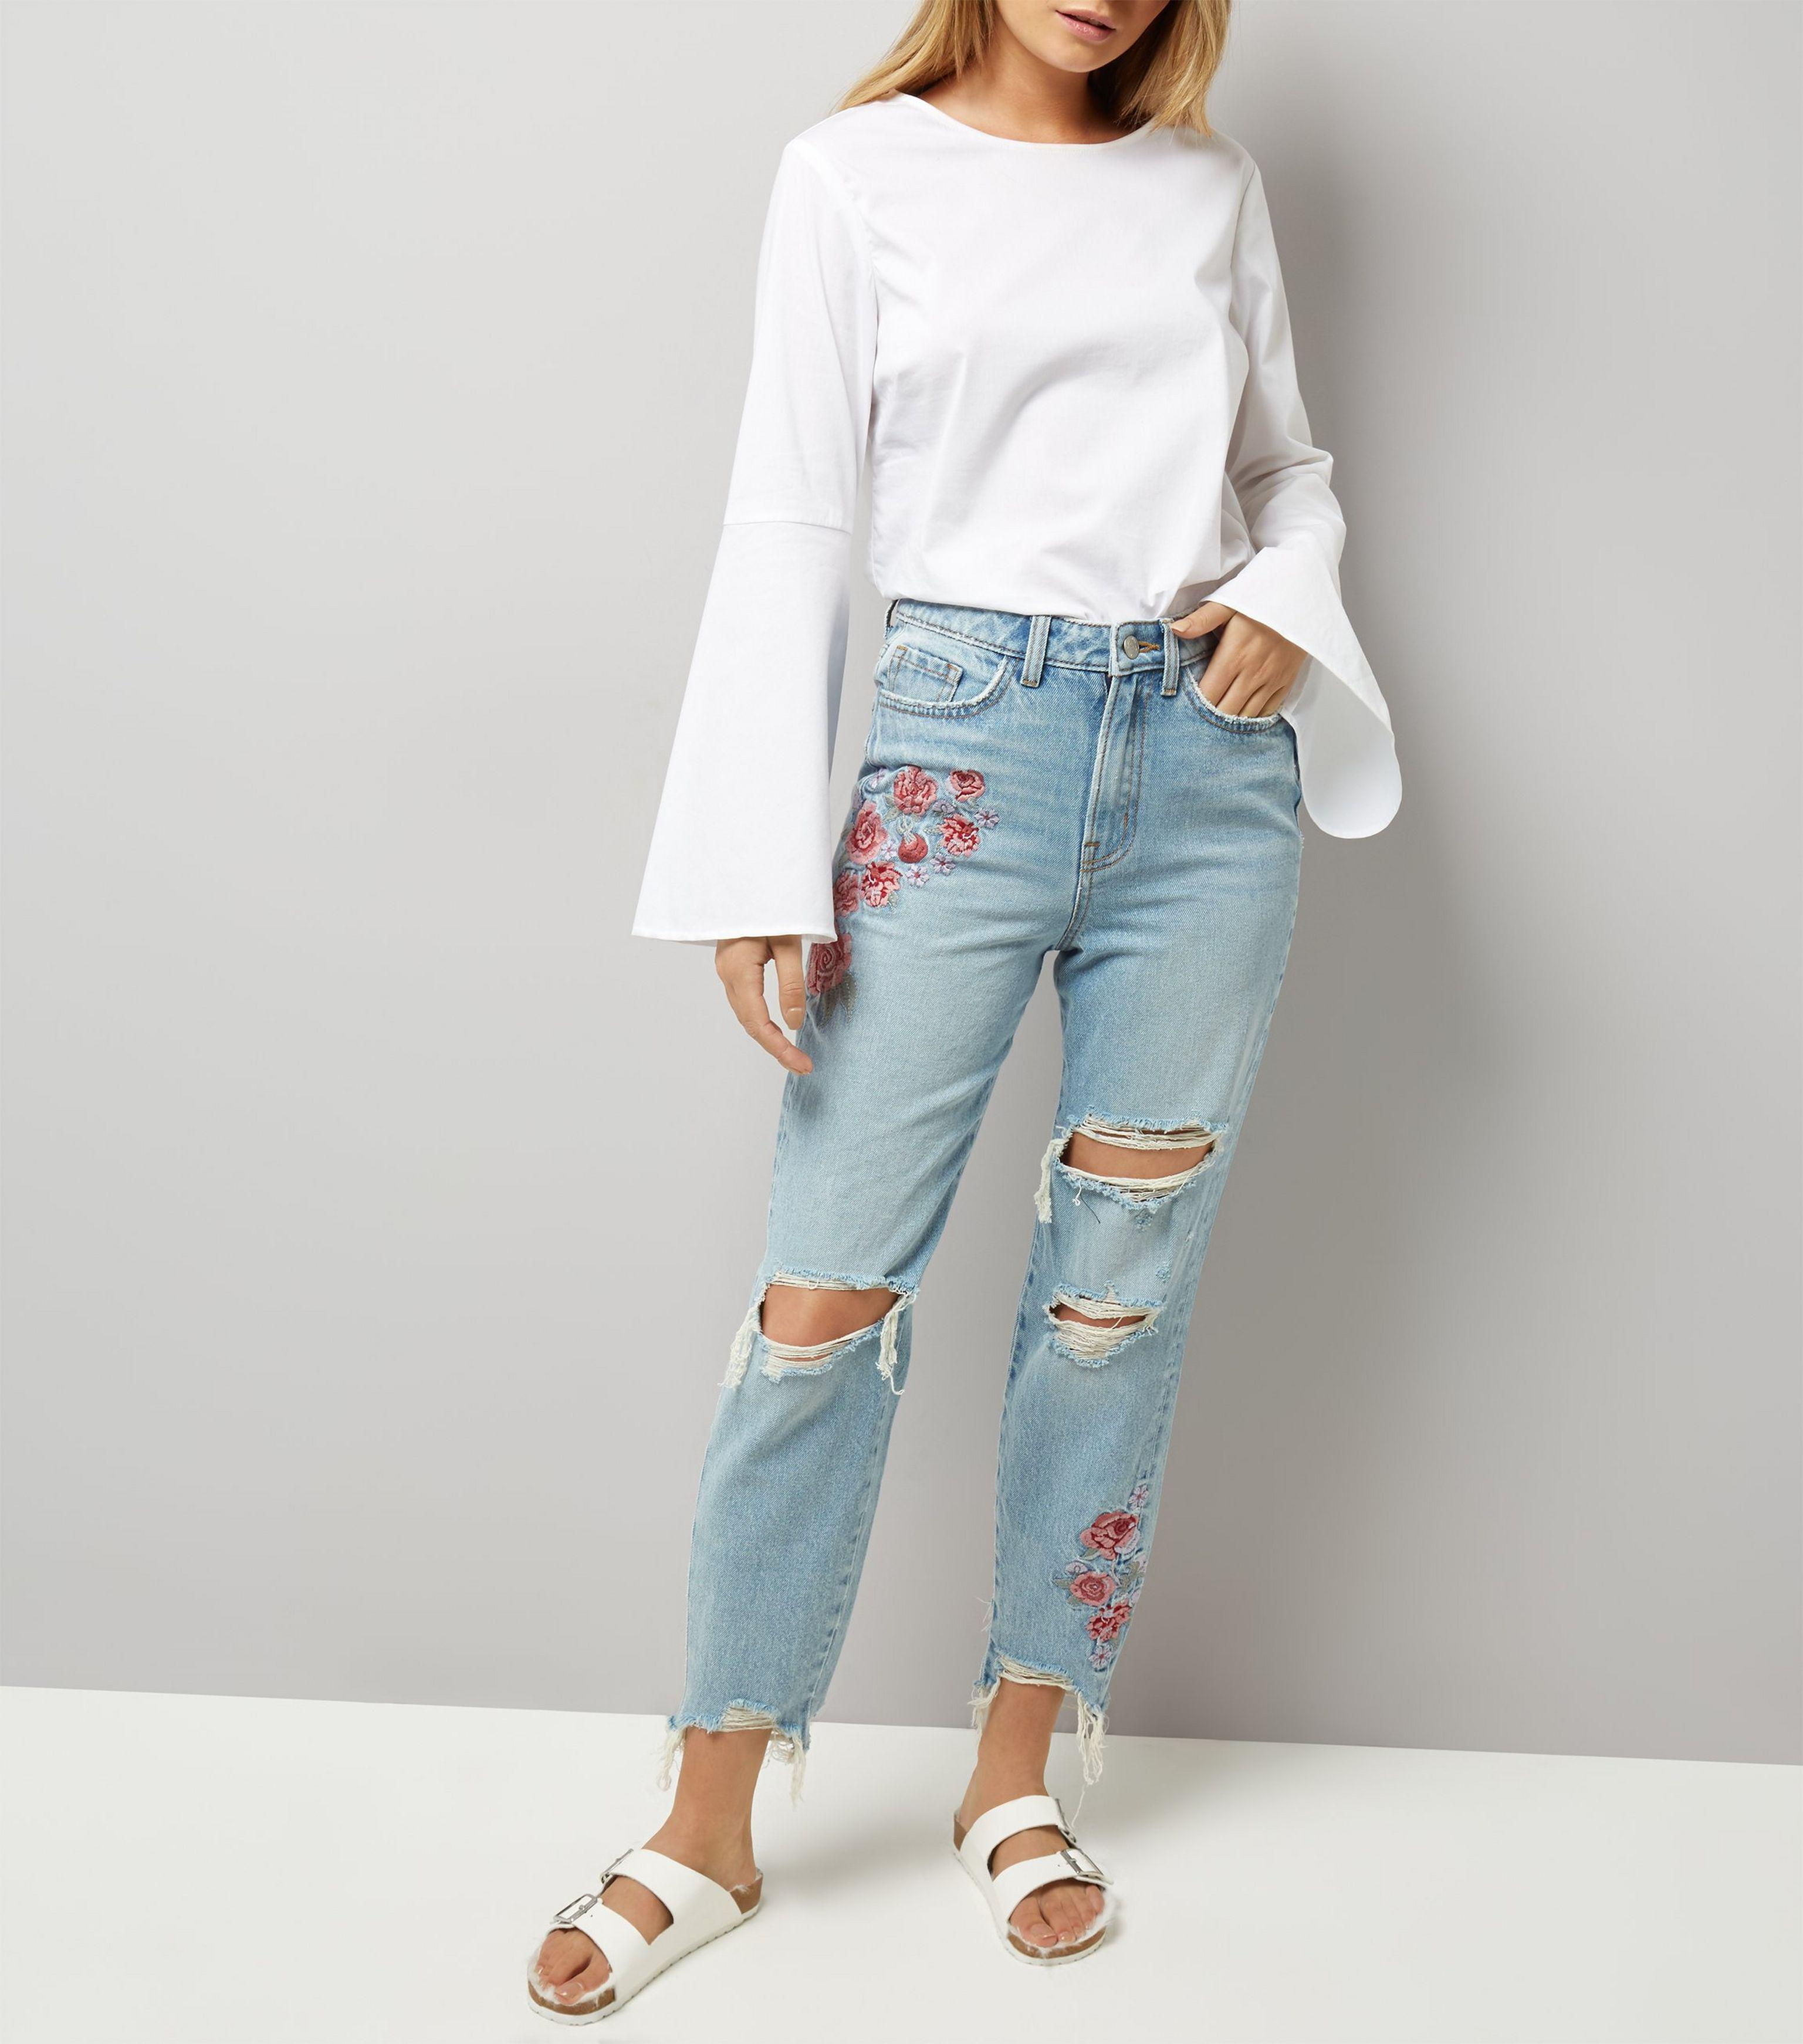 289bd66ae8 New Look Pale Blue Floral Embroidered Ripped Tori Mom Jeans in Blue ...